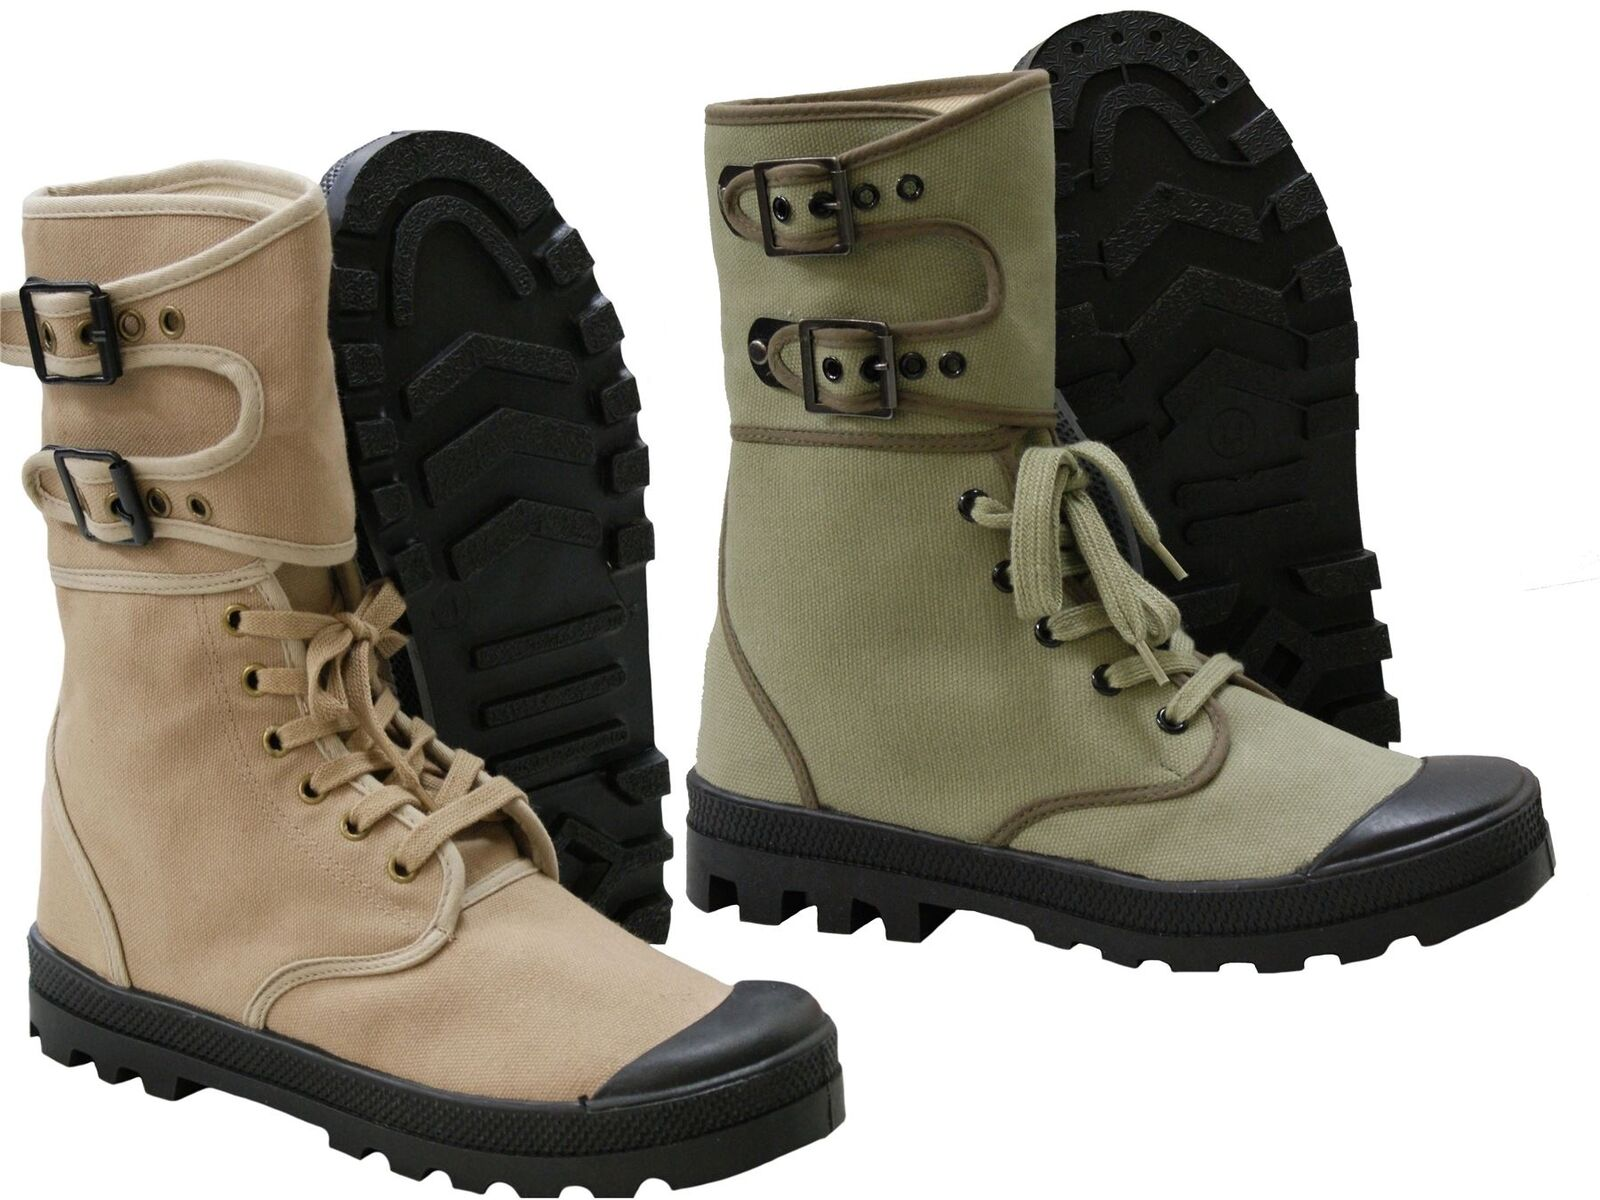 New French Ranger Boots Lace Up Canvas Army Footwear